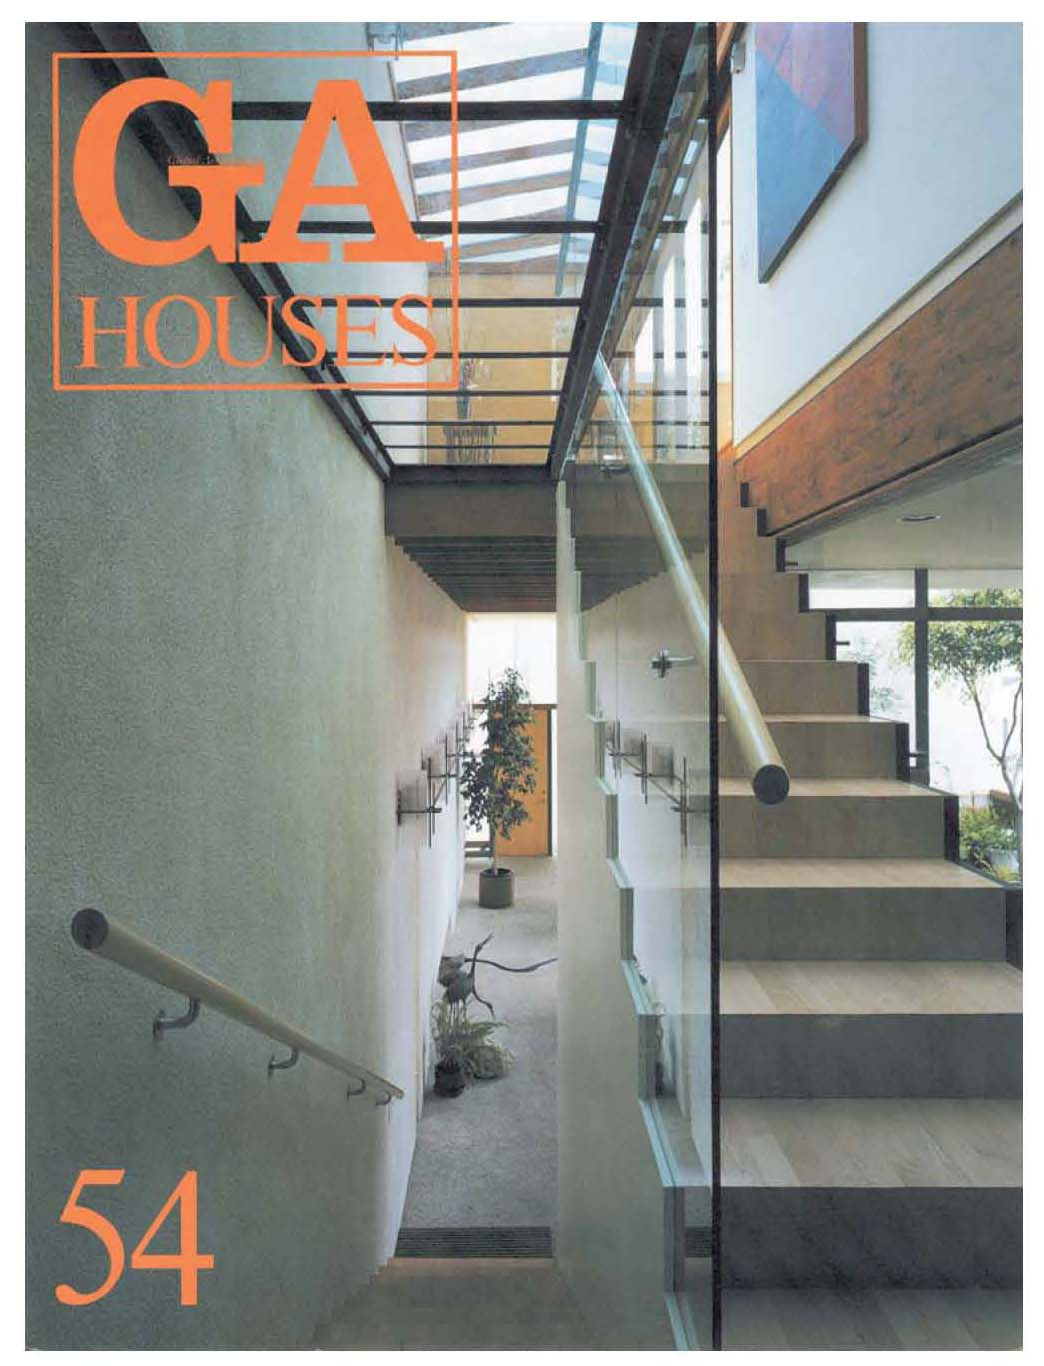 GA Houses 54 | Trotter House & Hogan Mayo House – featuring CHENG Design